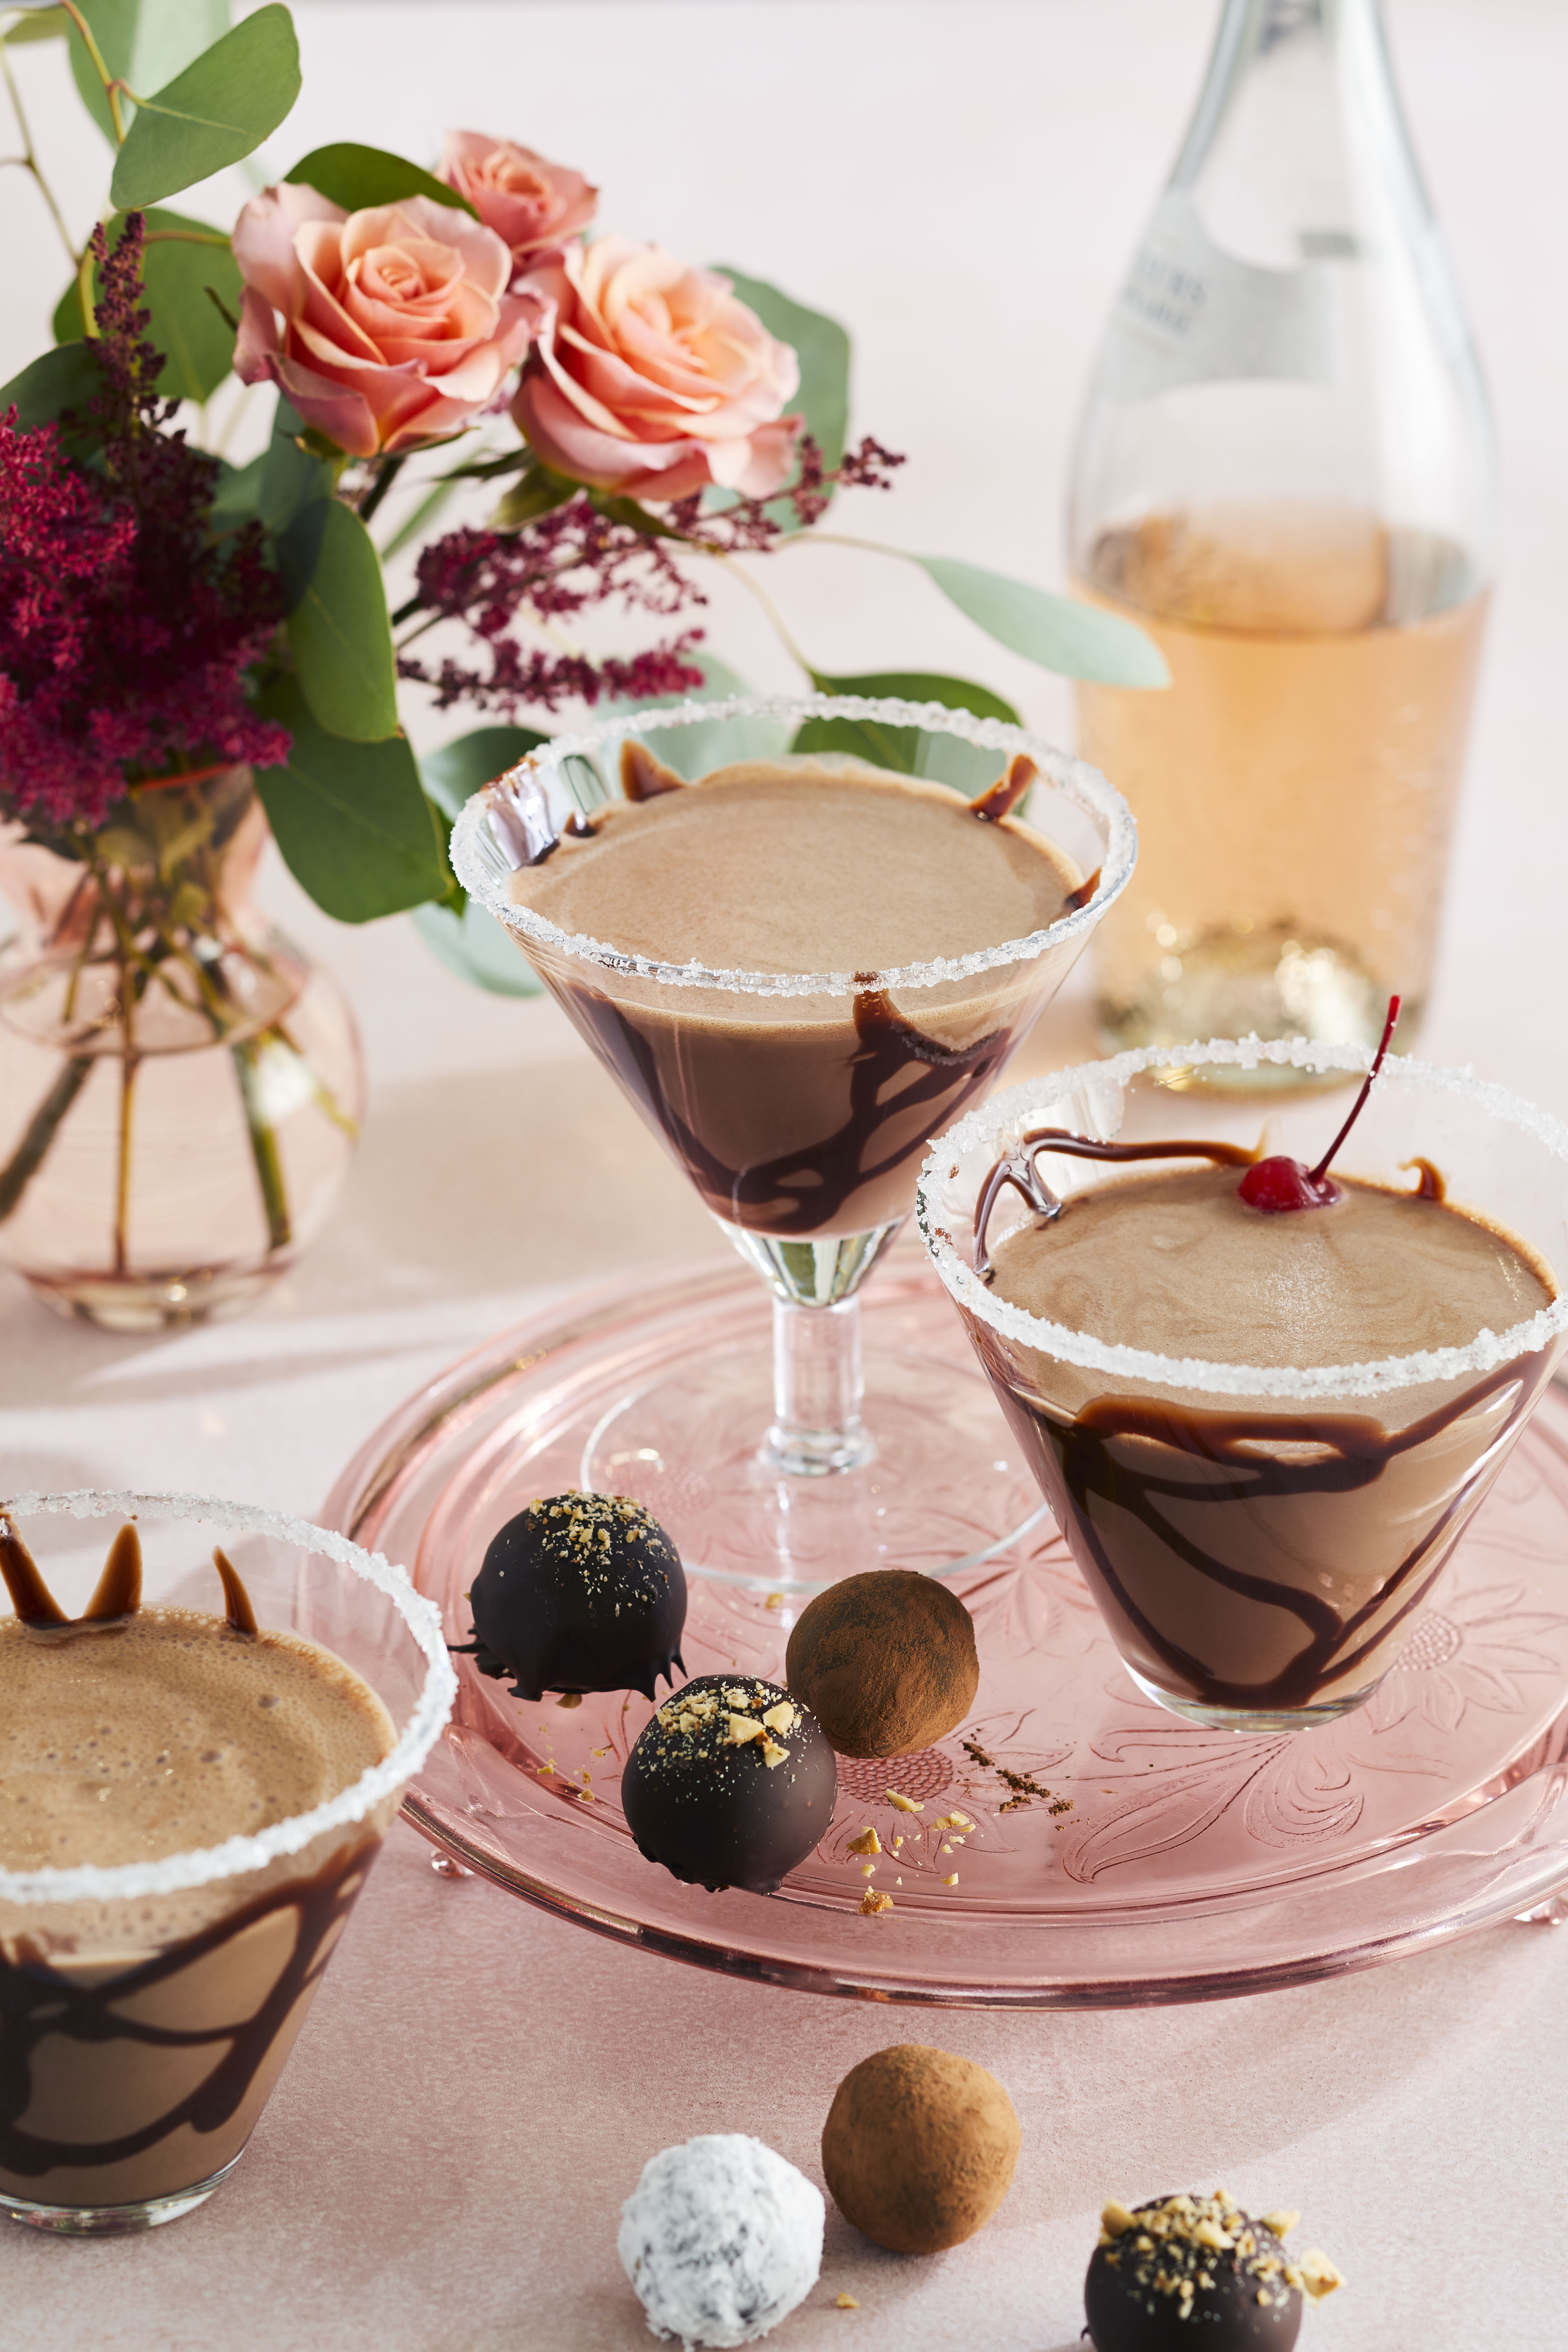 Easy Chocolate Martinis for Two